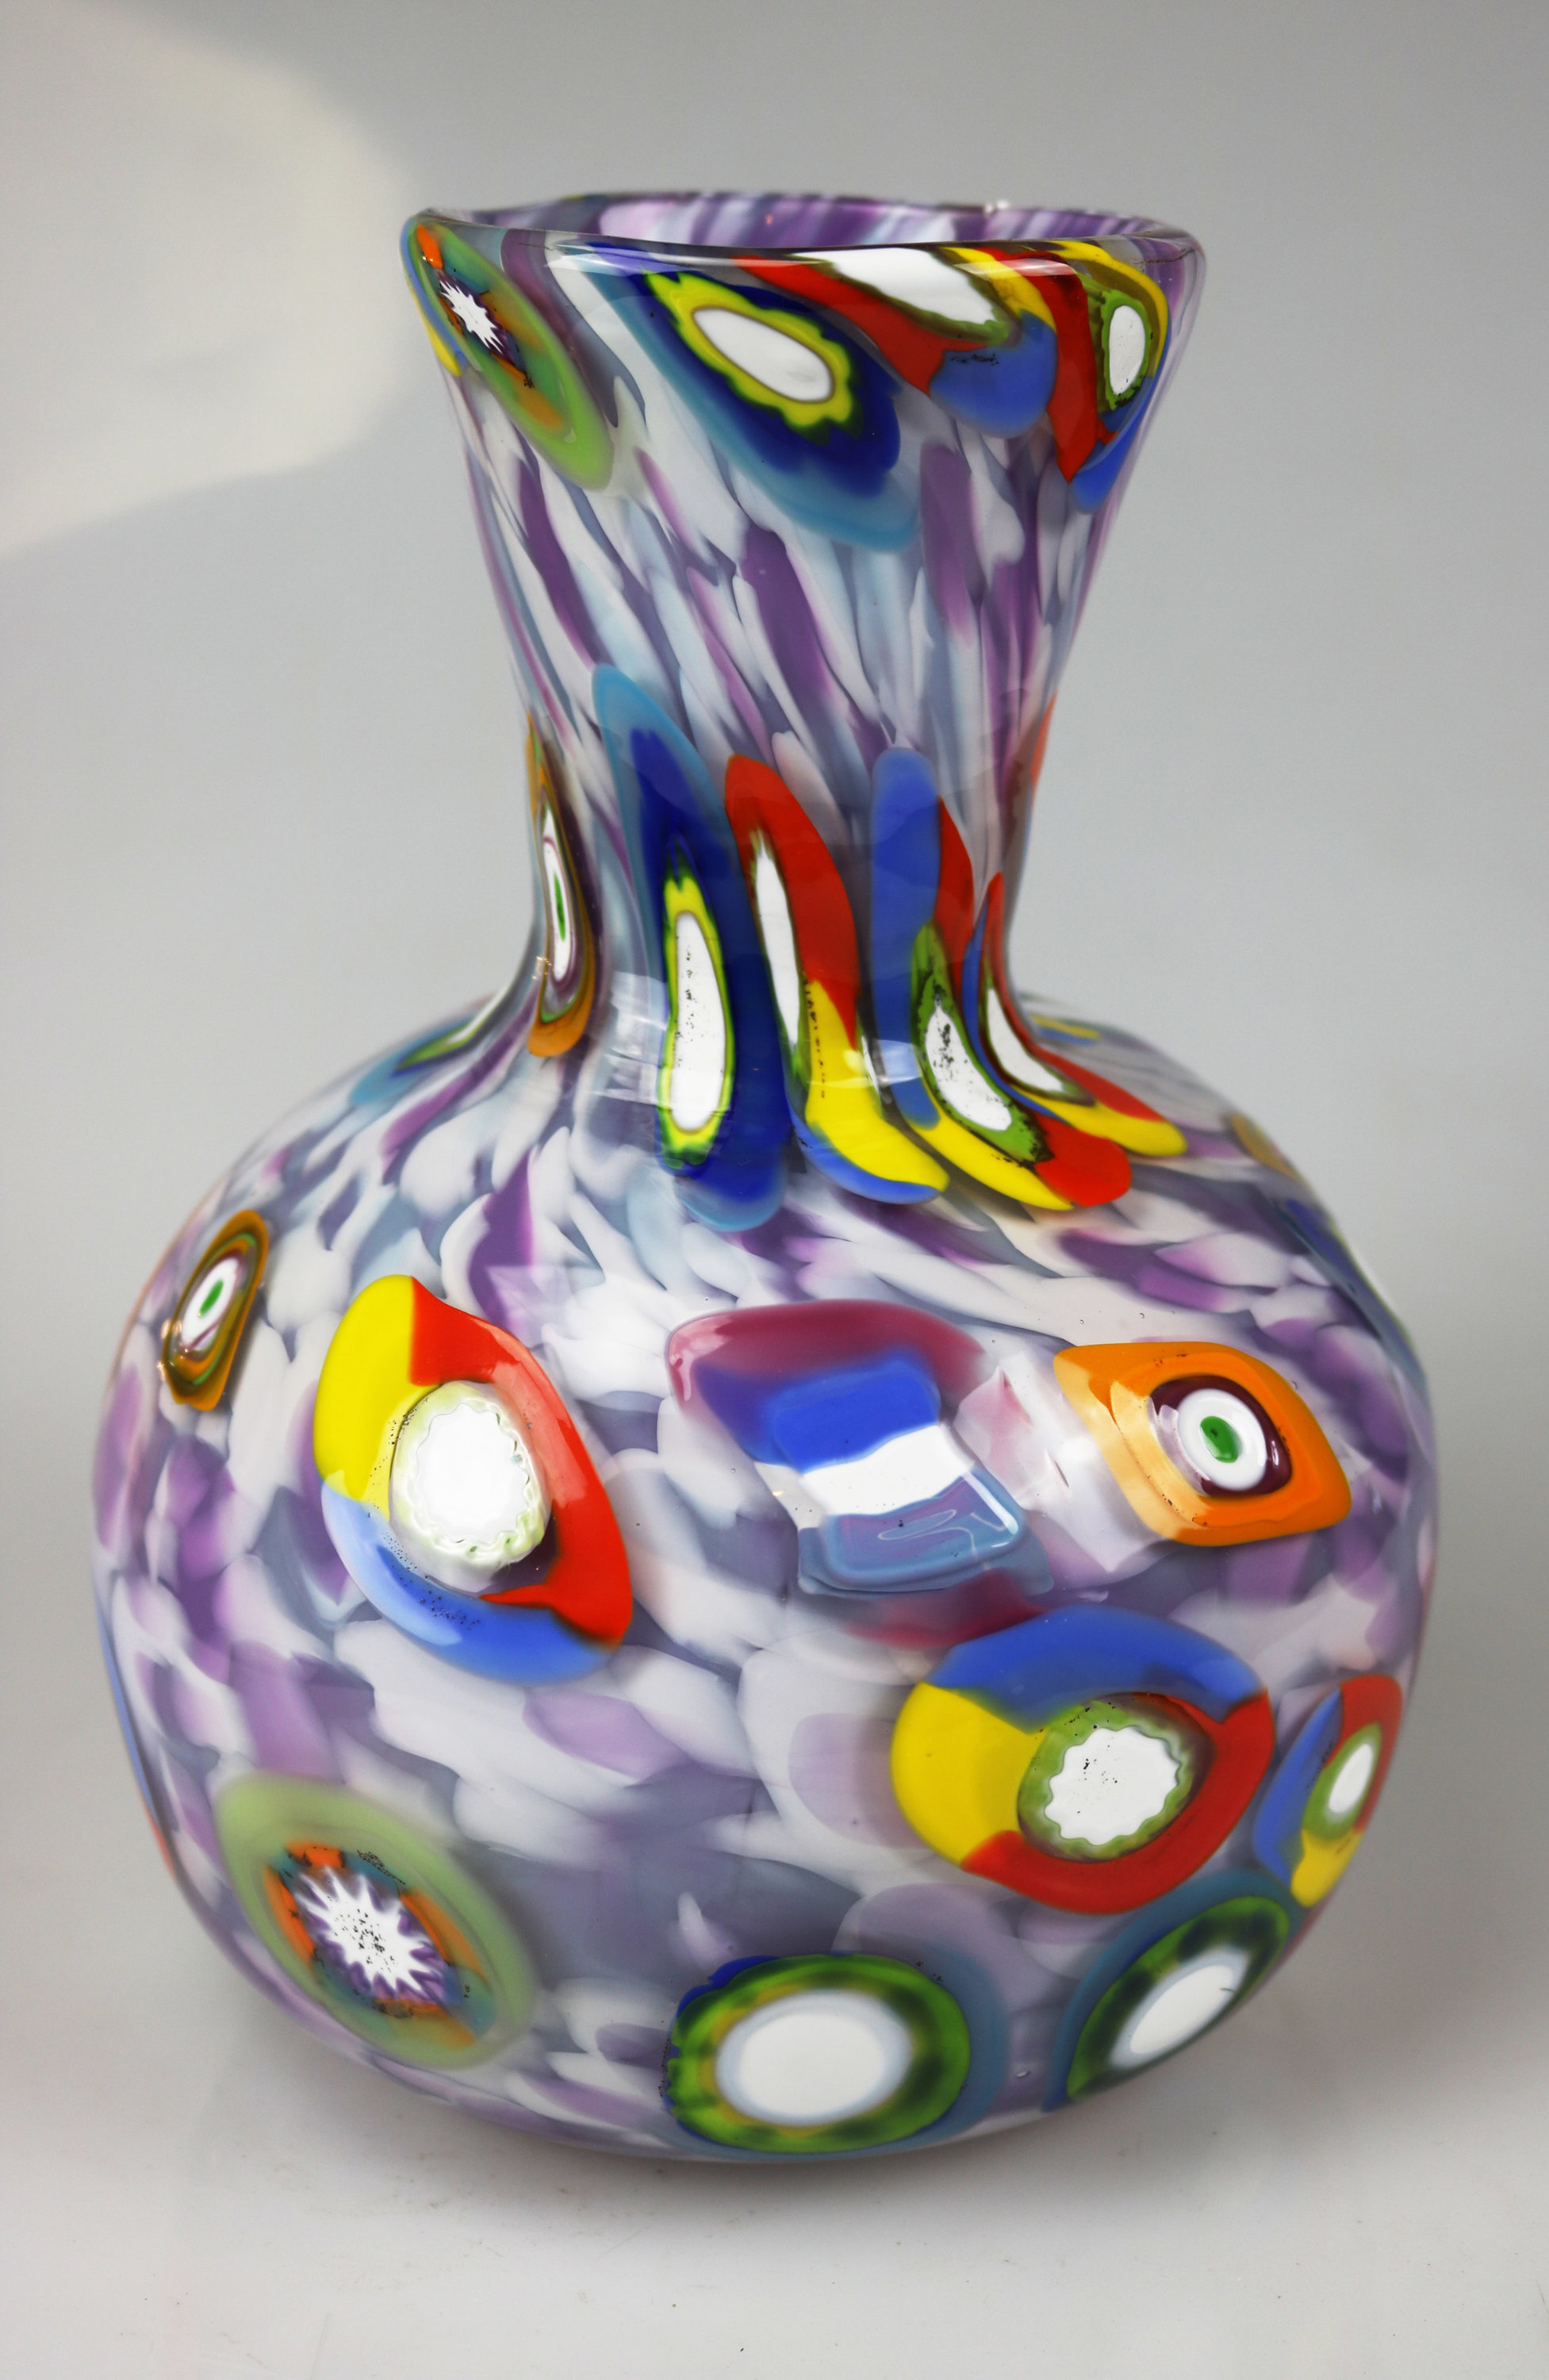 Lumelstudios glassseries happiness vase ejpawx